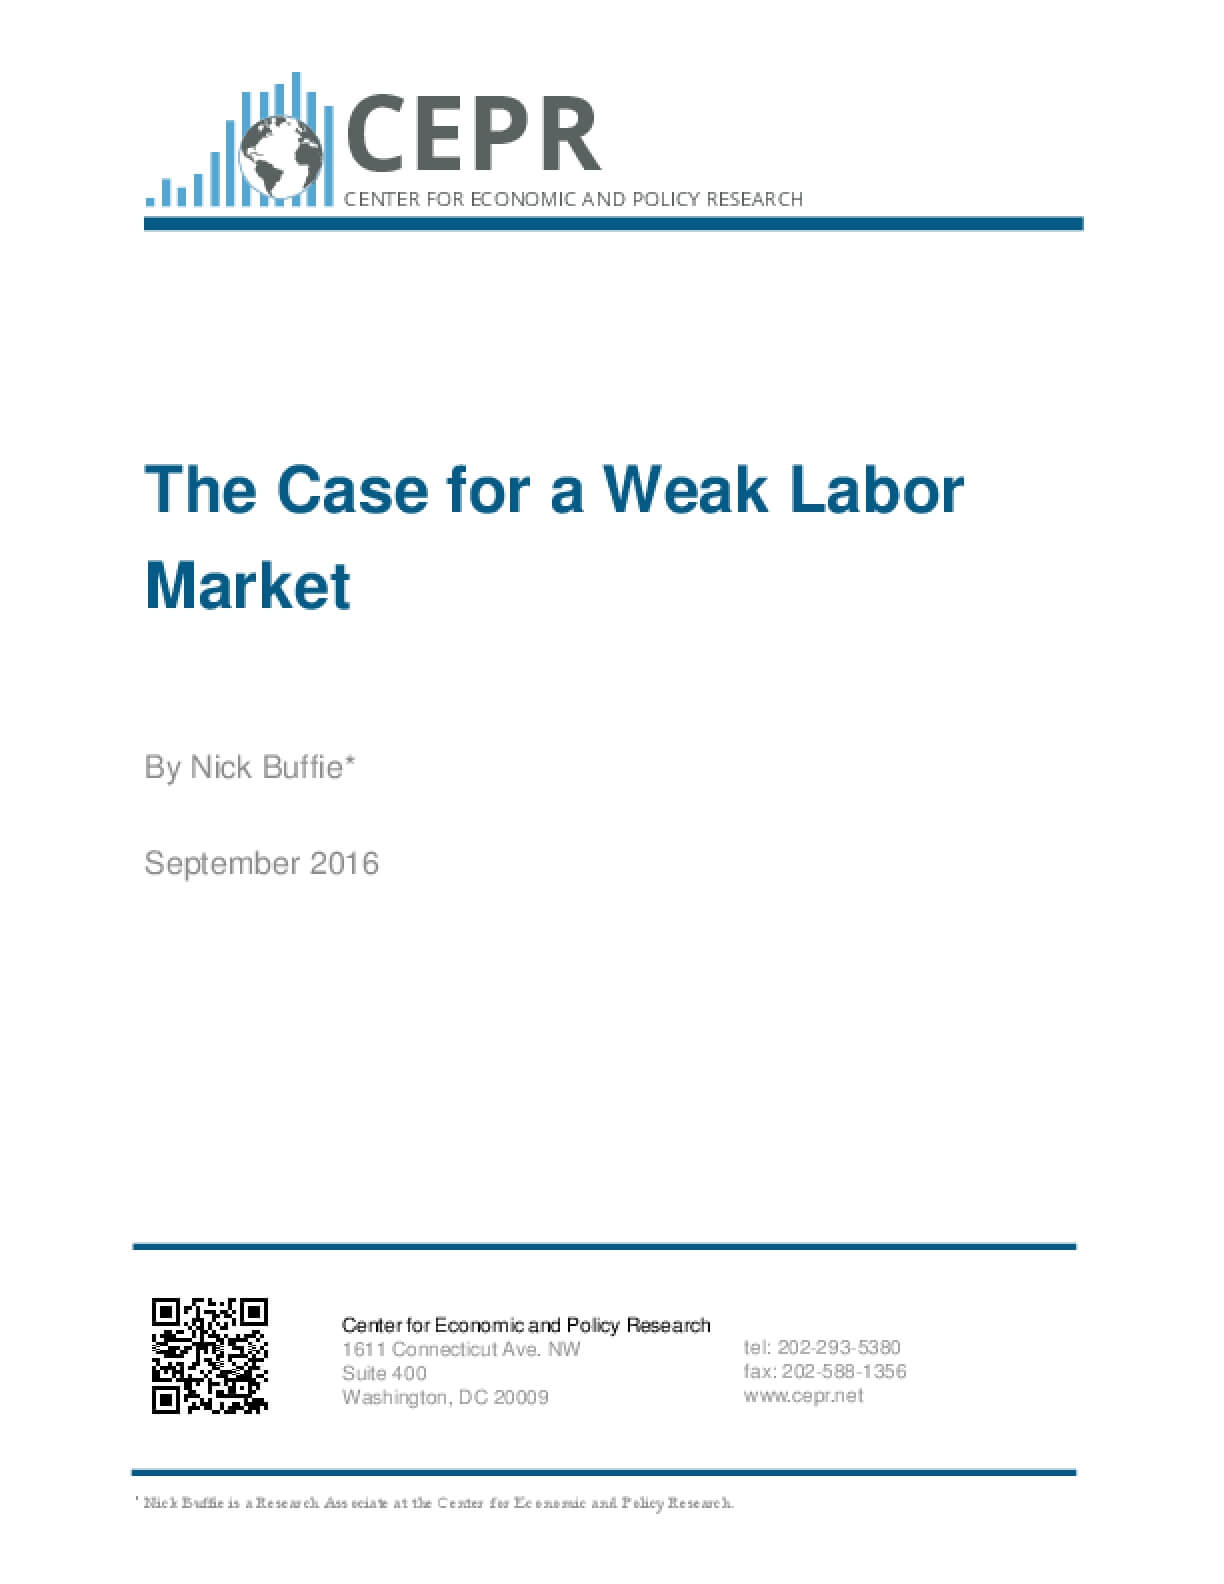 The Case for a Weak Labor Market